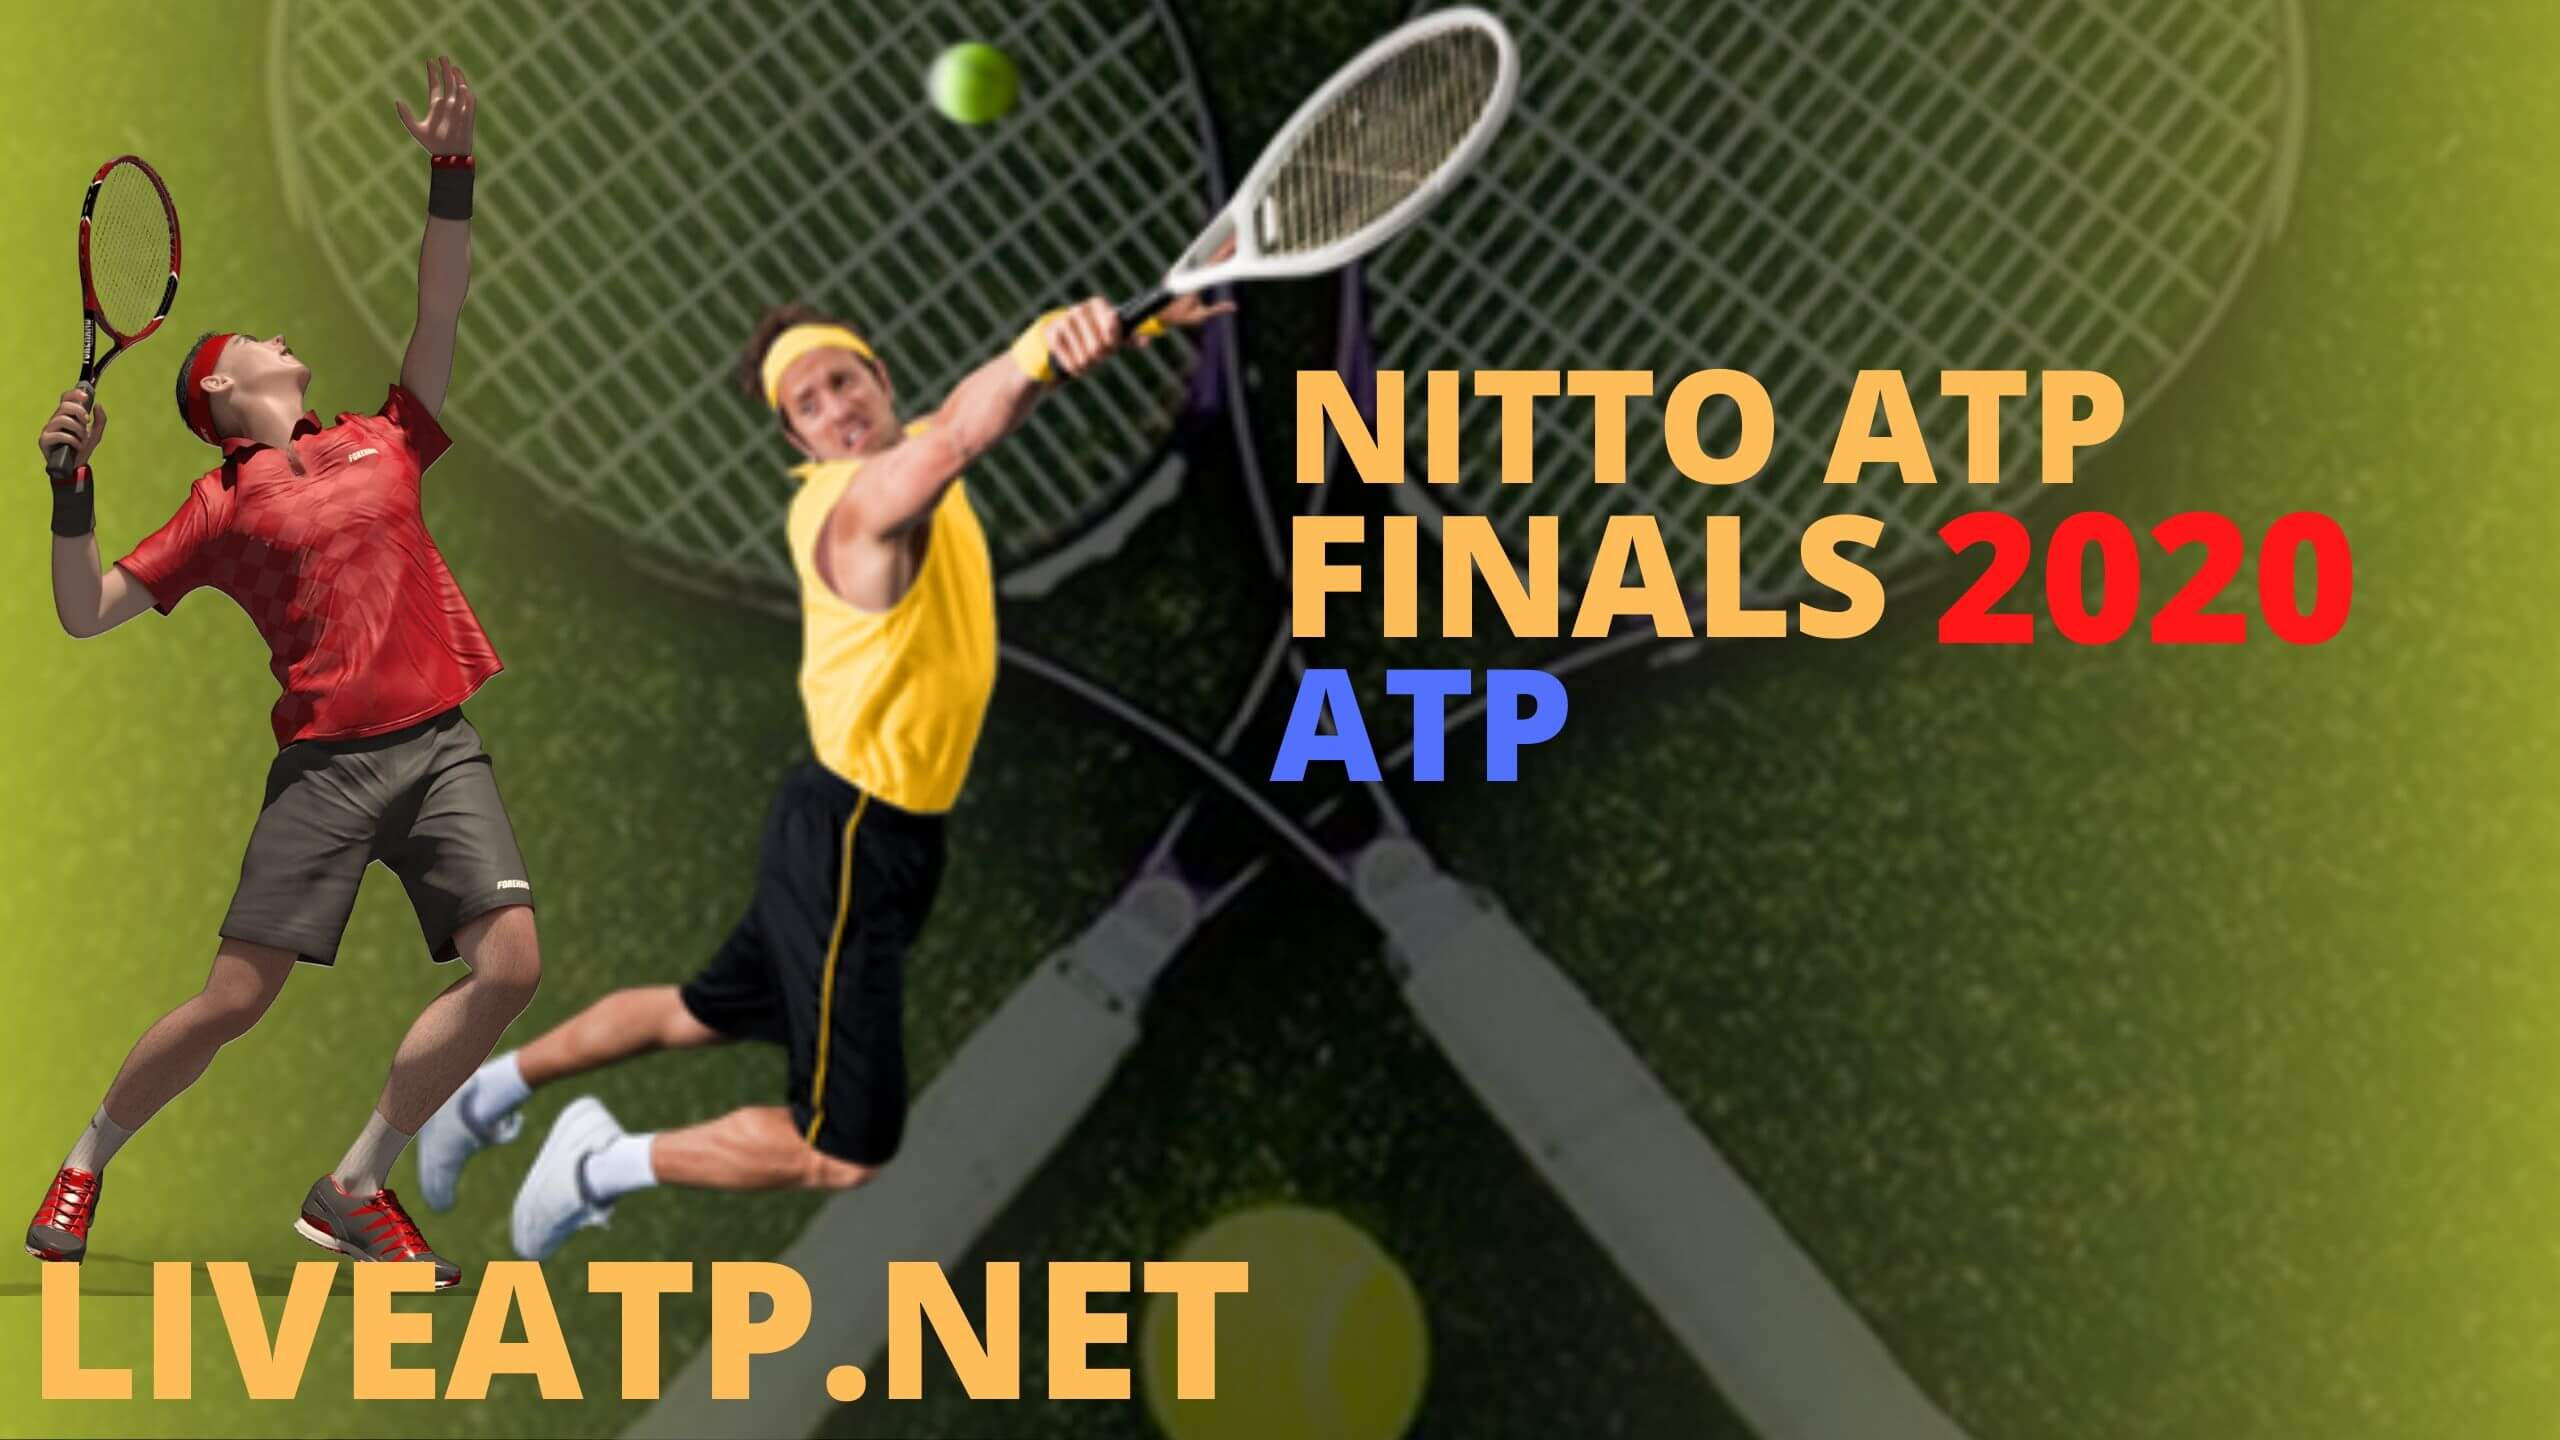 Nitto ATP Finals Live Stream 2020 |  Day 2